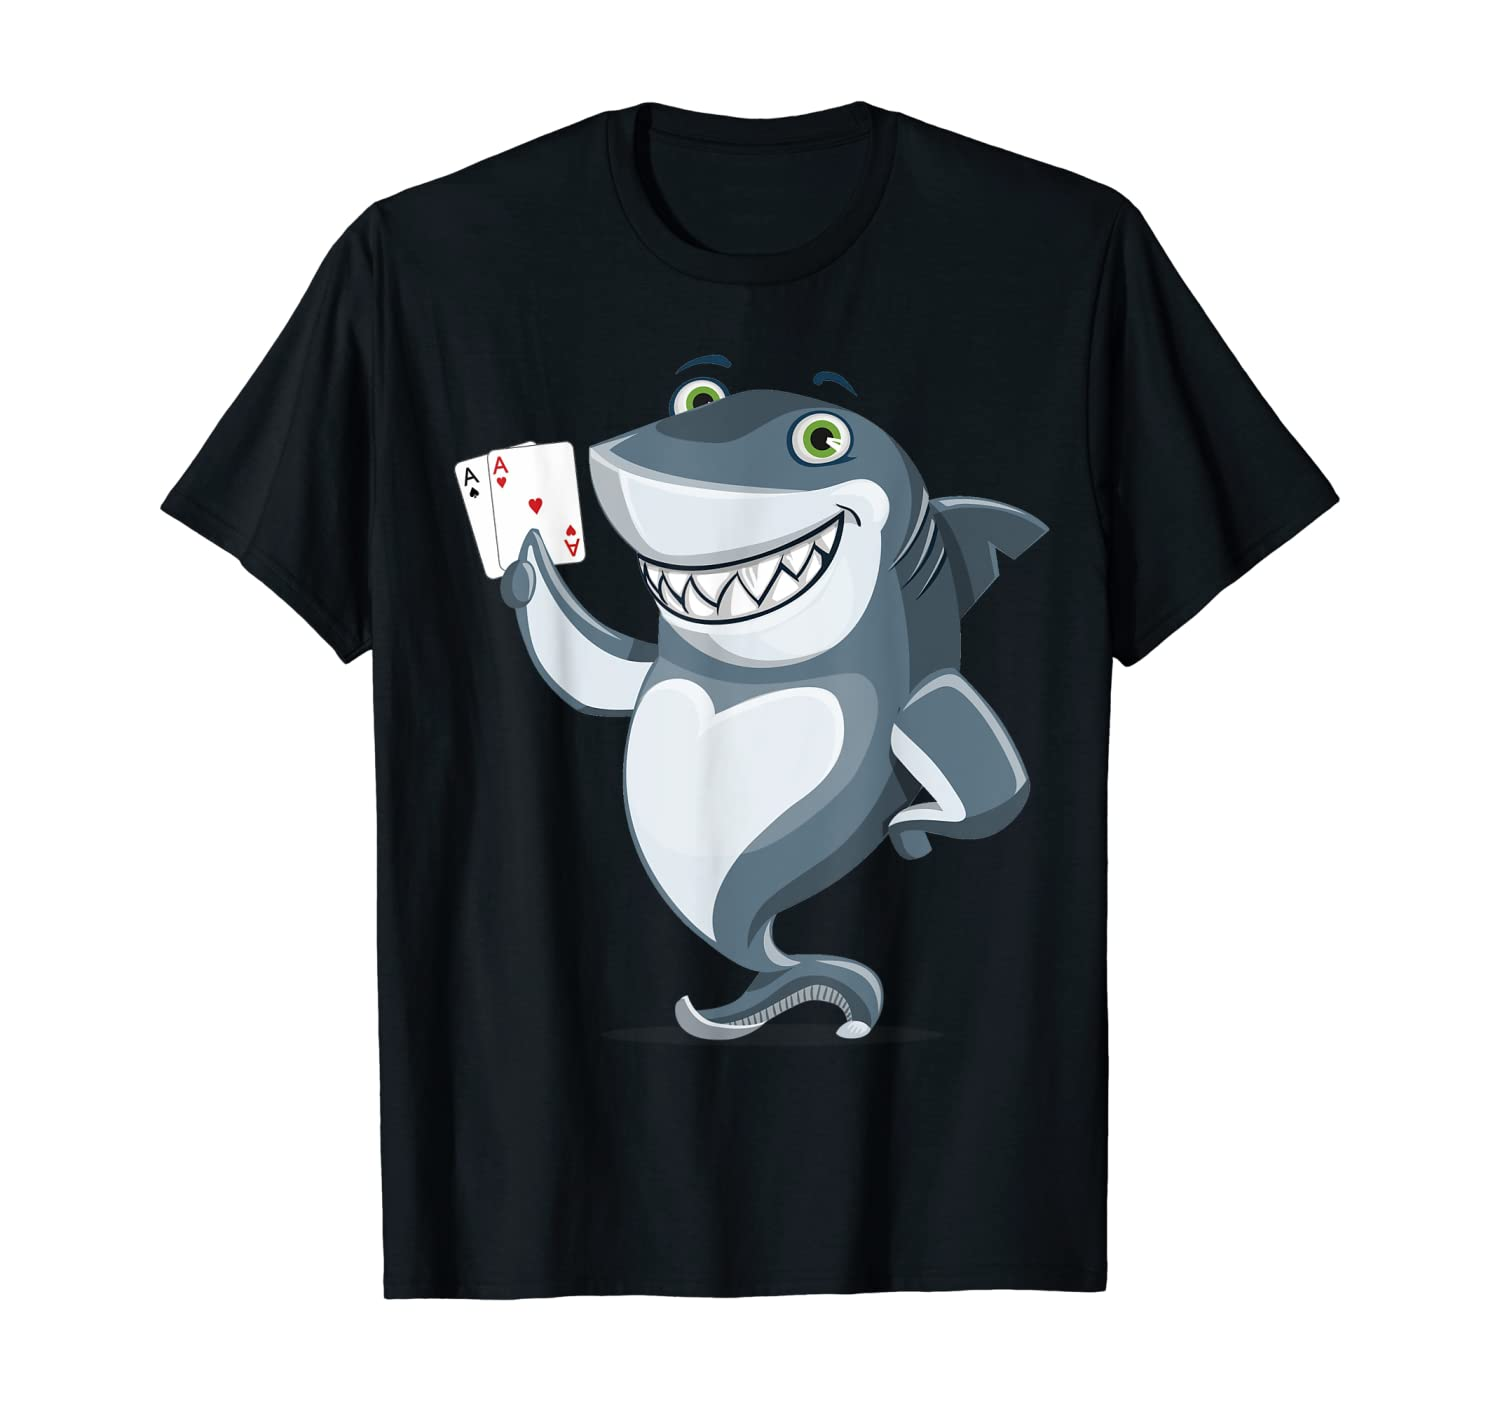 Shark Poker Player T-Shirt - Funny Poker Gift TShirt